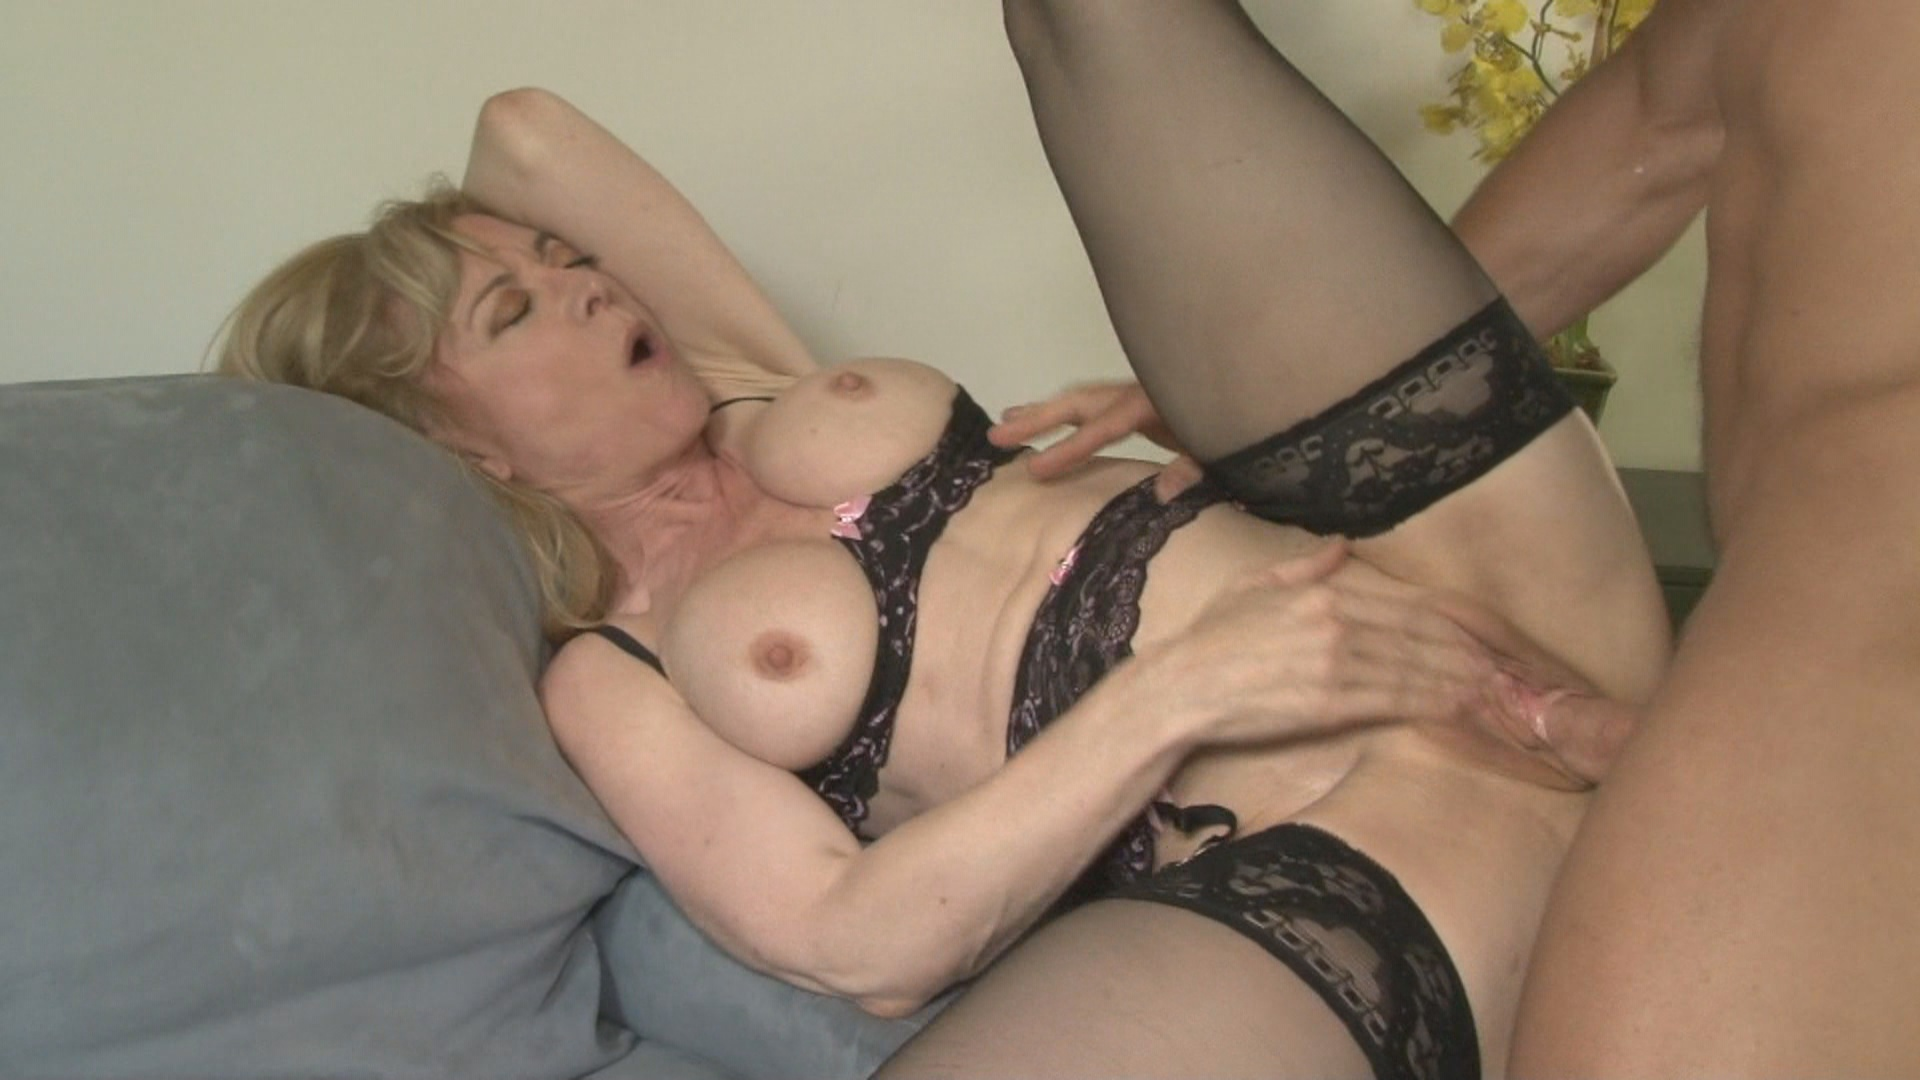 Nasty Grannies xvideos181693